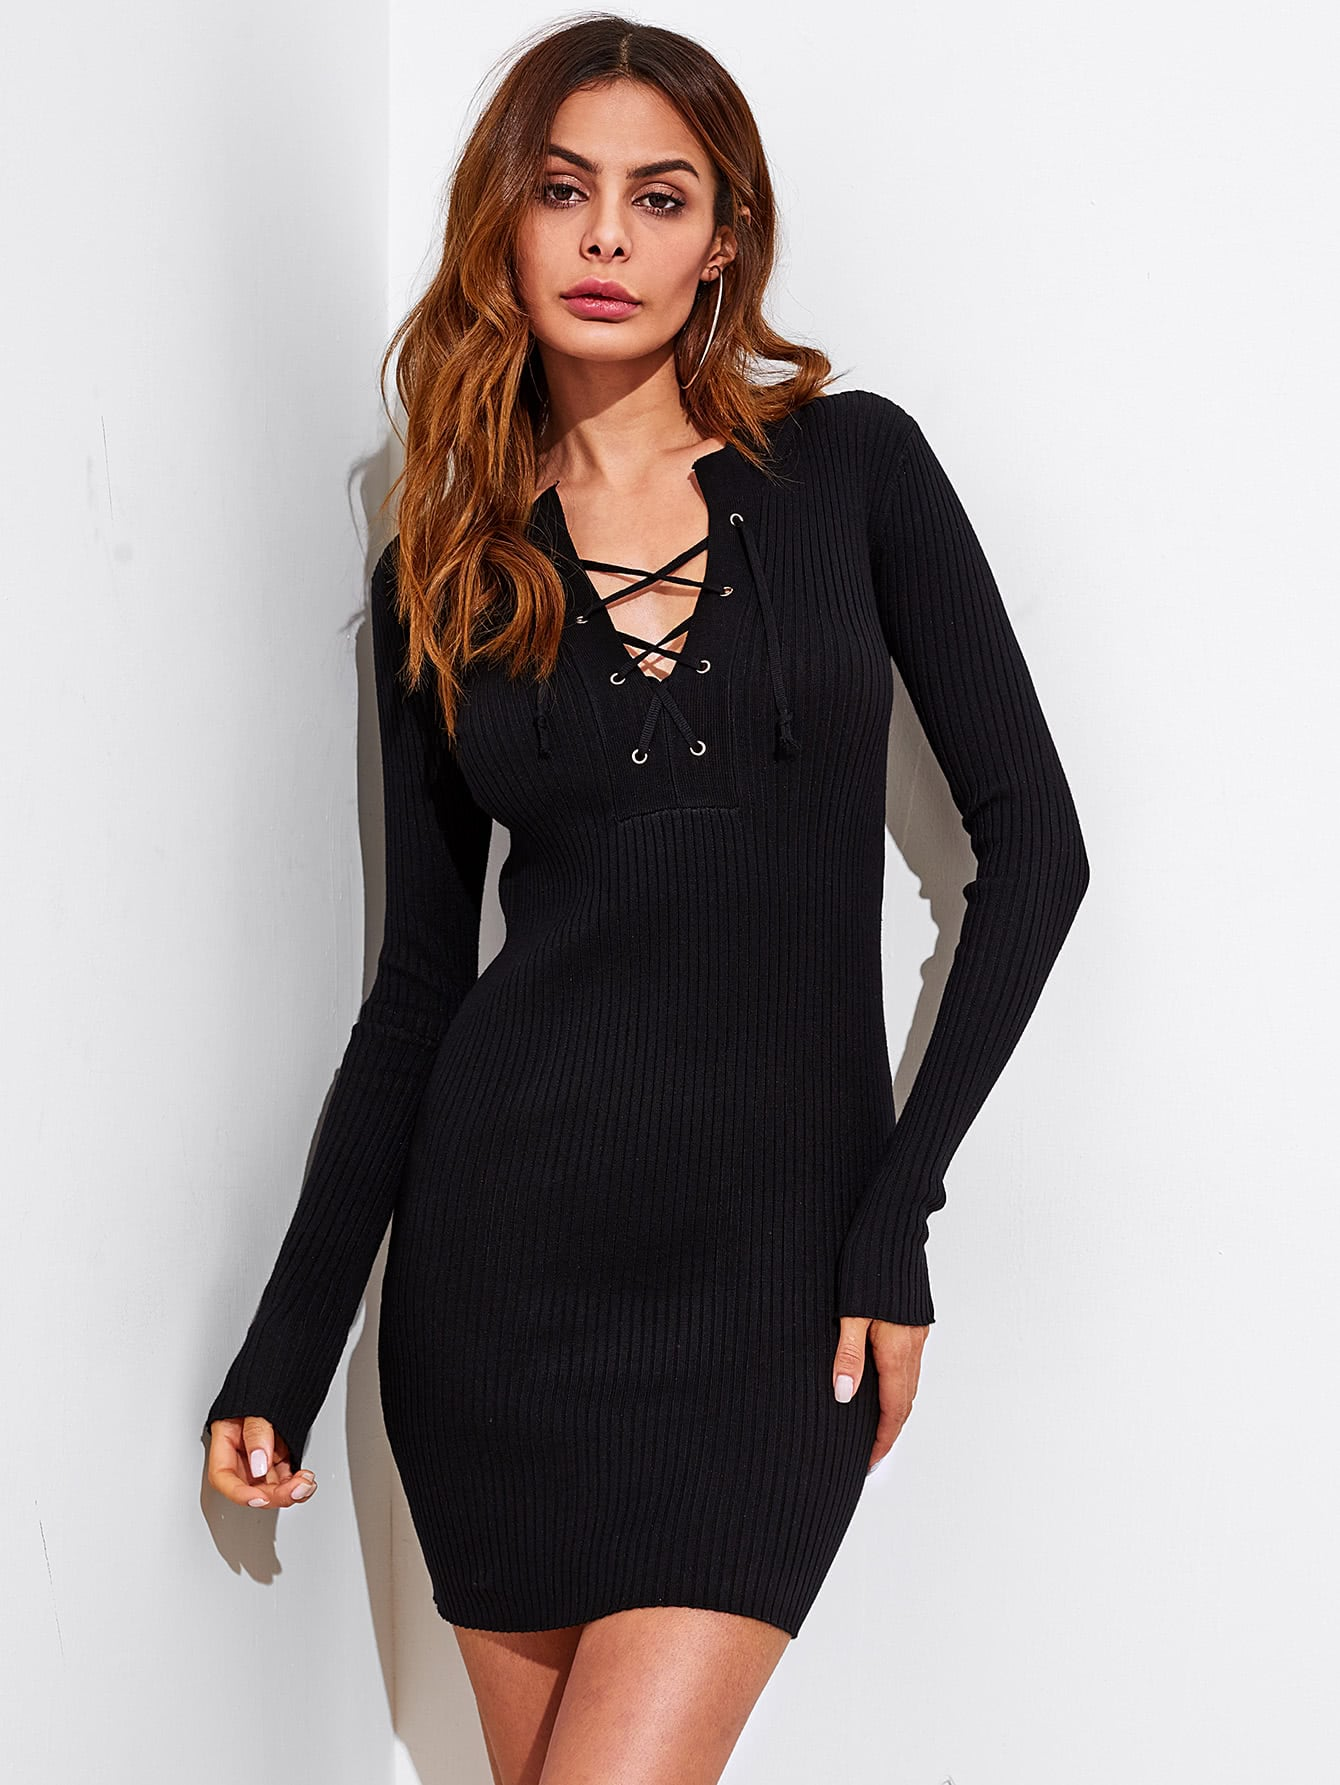 Eyelet Lace Up V Neck Ribbed Trim Sweater Dress dress170811201